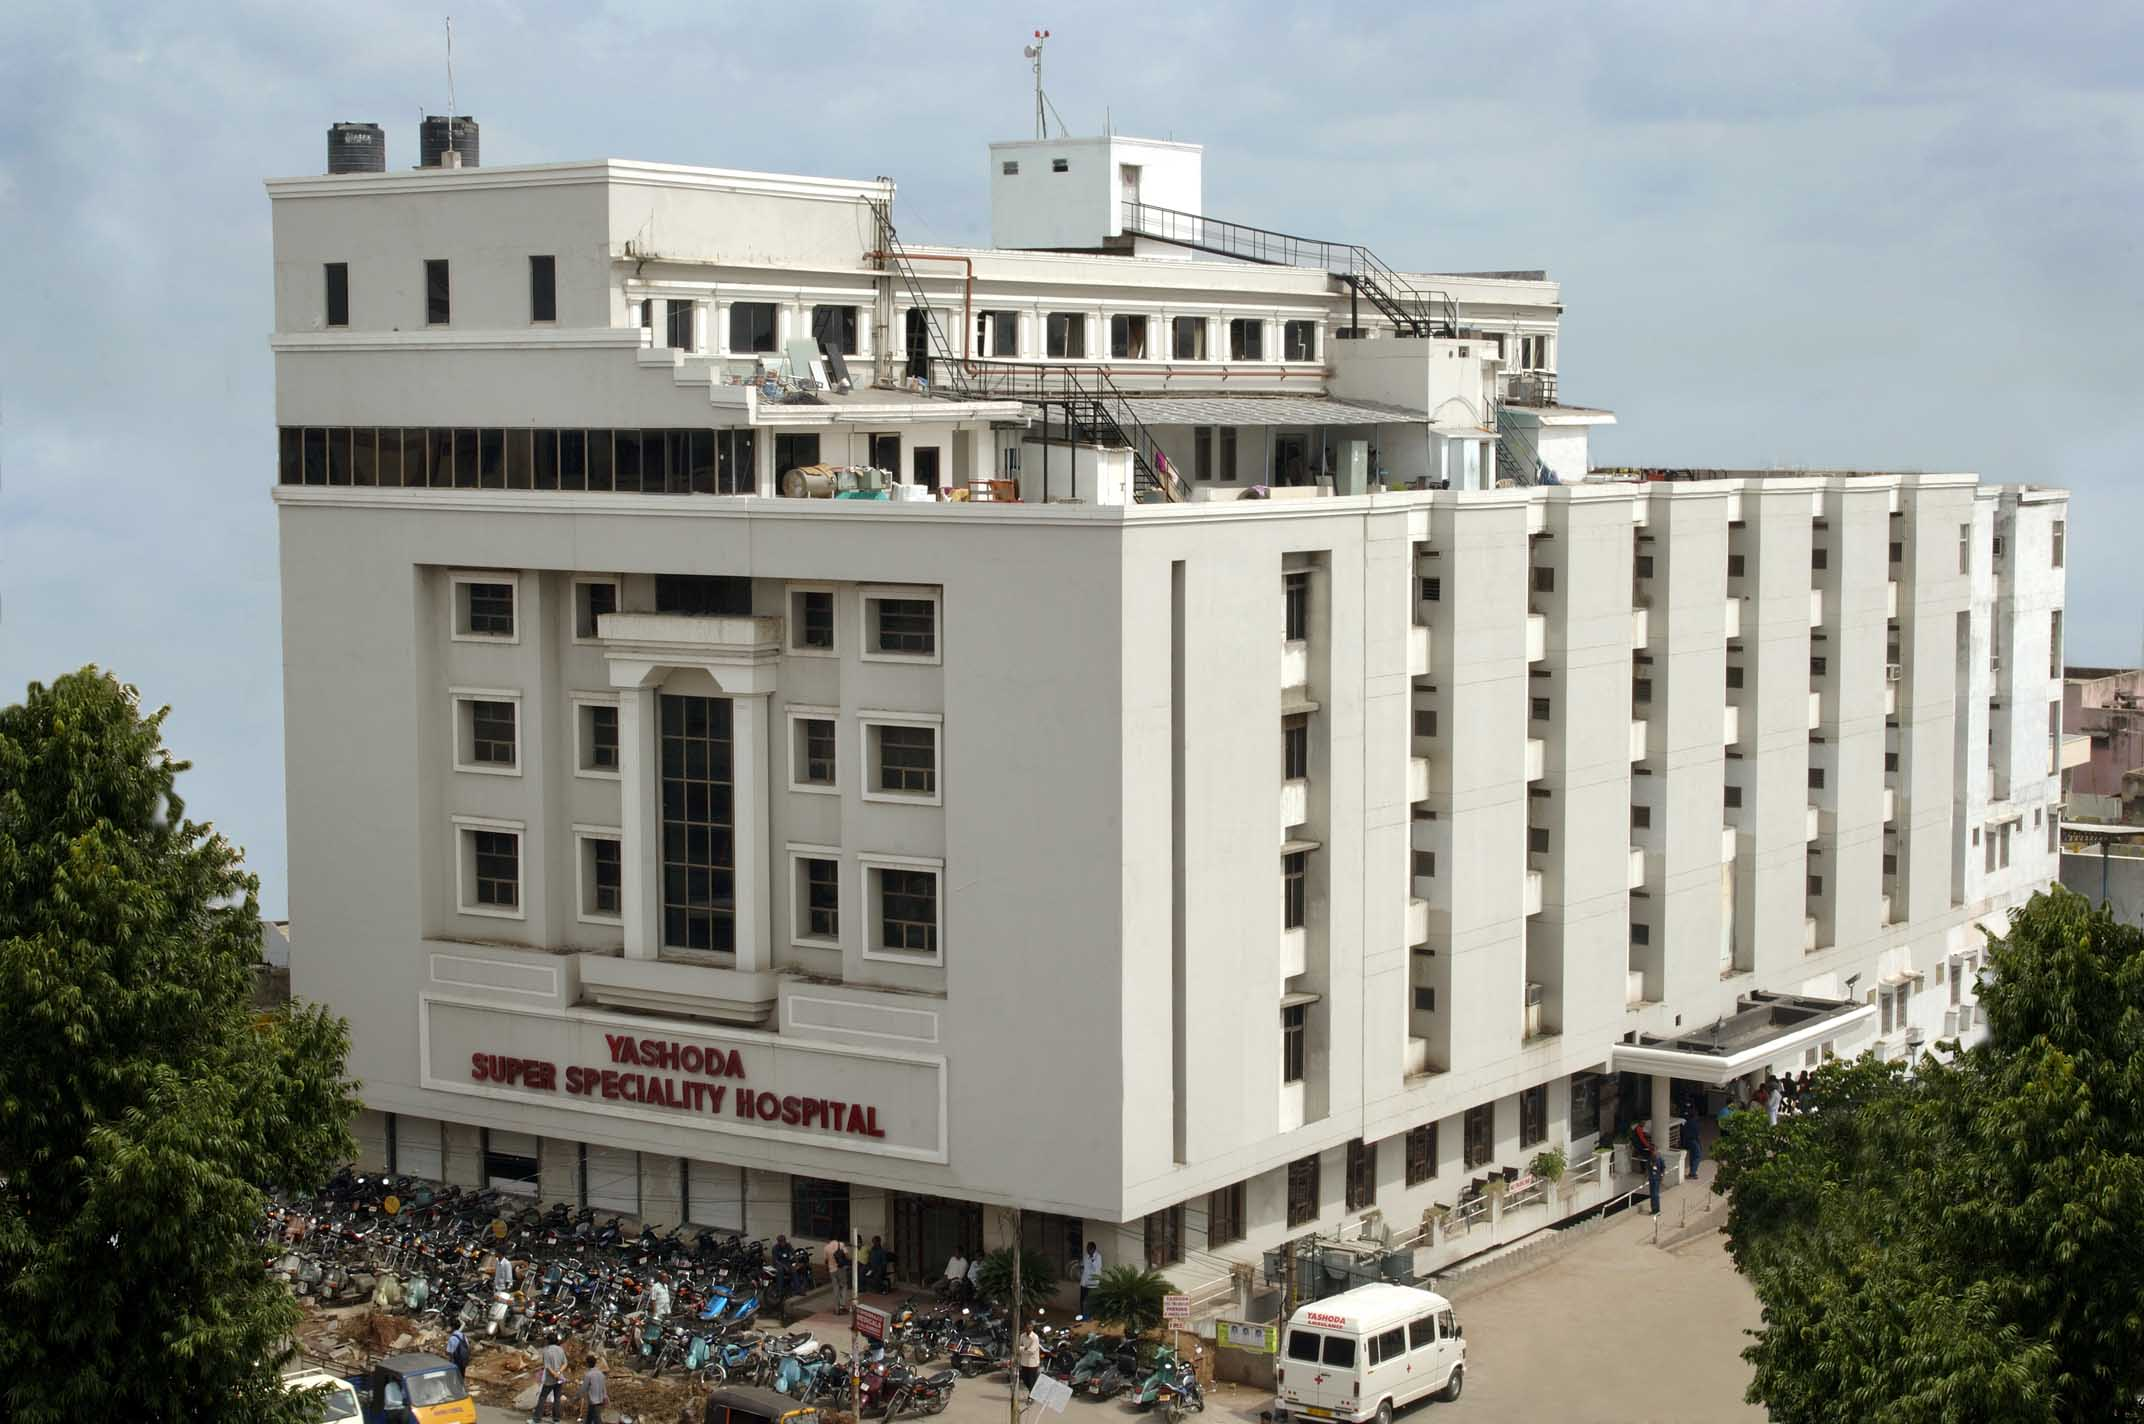 Super speciality hospital Malakpet